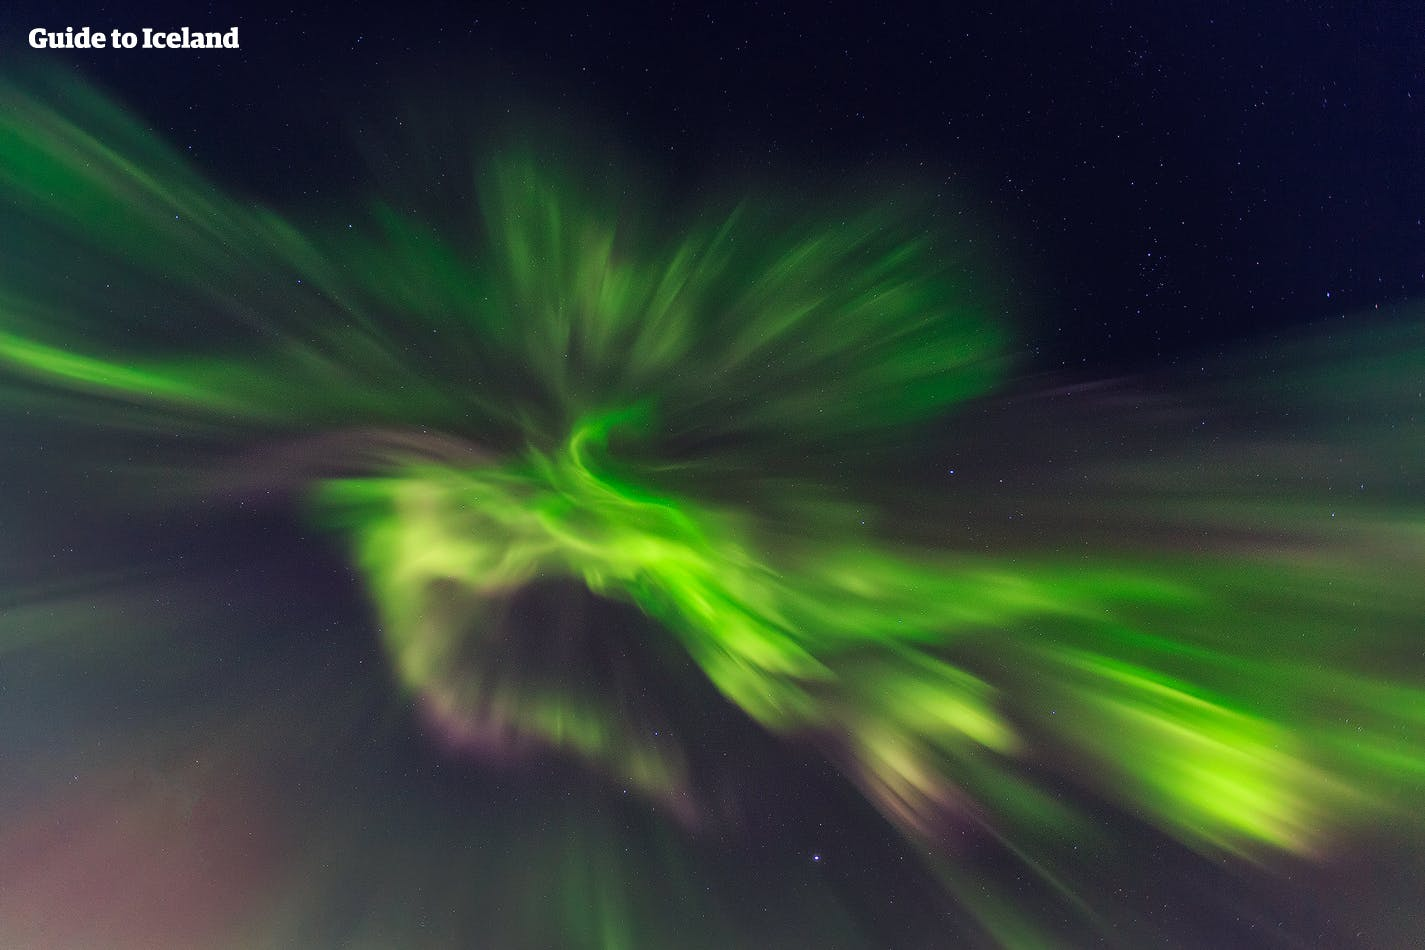 To photograph the Northern Lights, you need a tripod and a long exposure time, unless they are particularly strong.